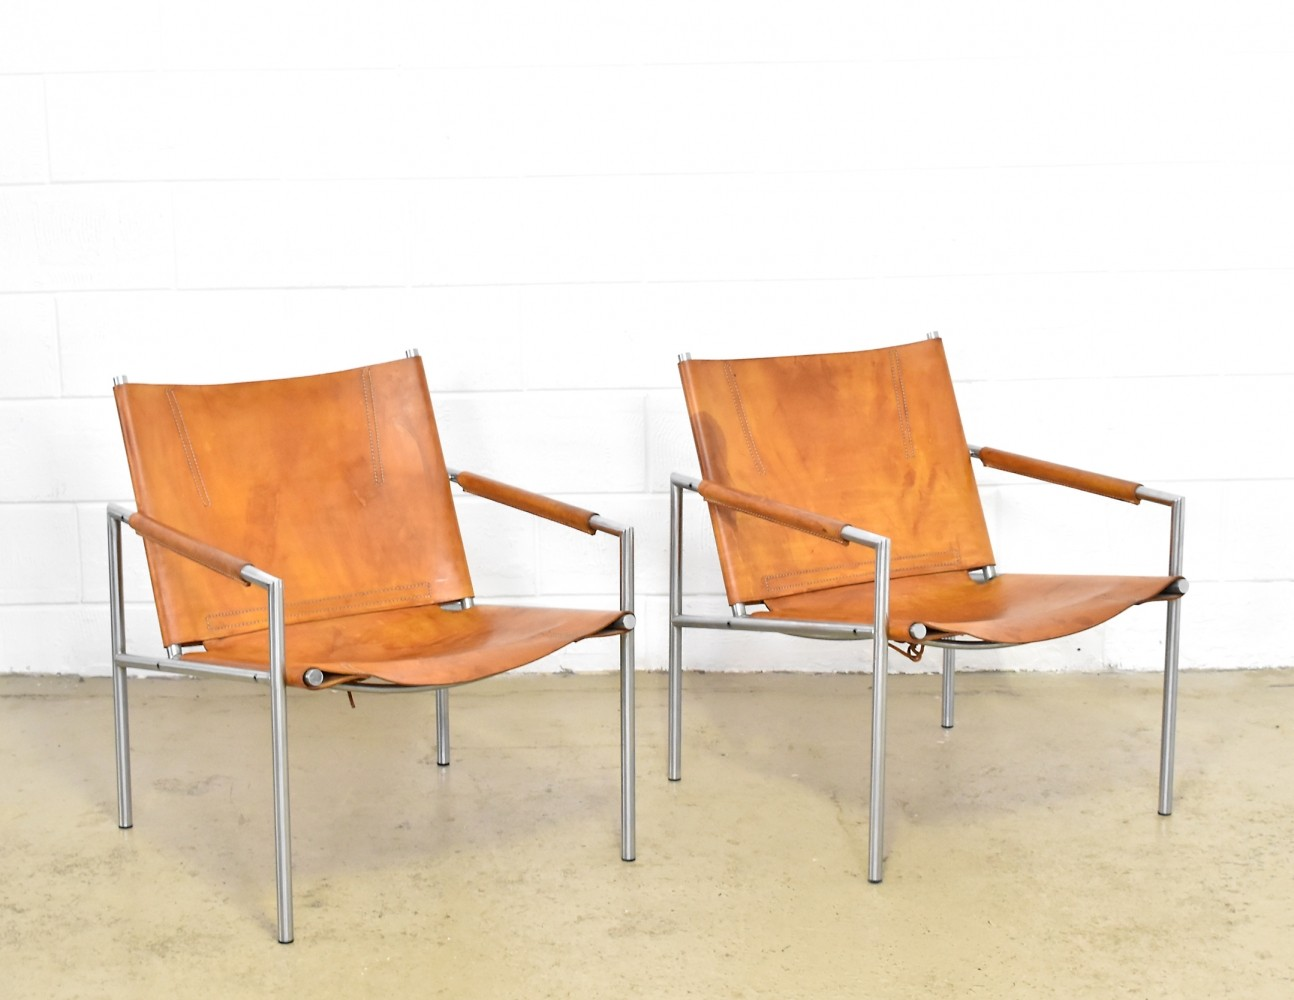 2 x ZS02 lounge chair by Martin Visser for Spectrum, 1960s